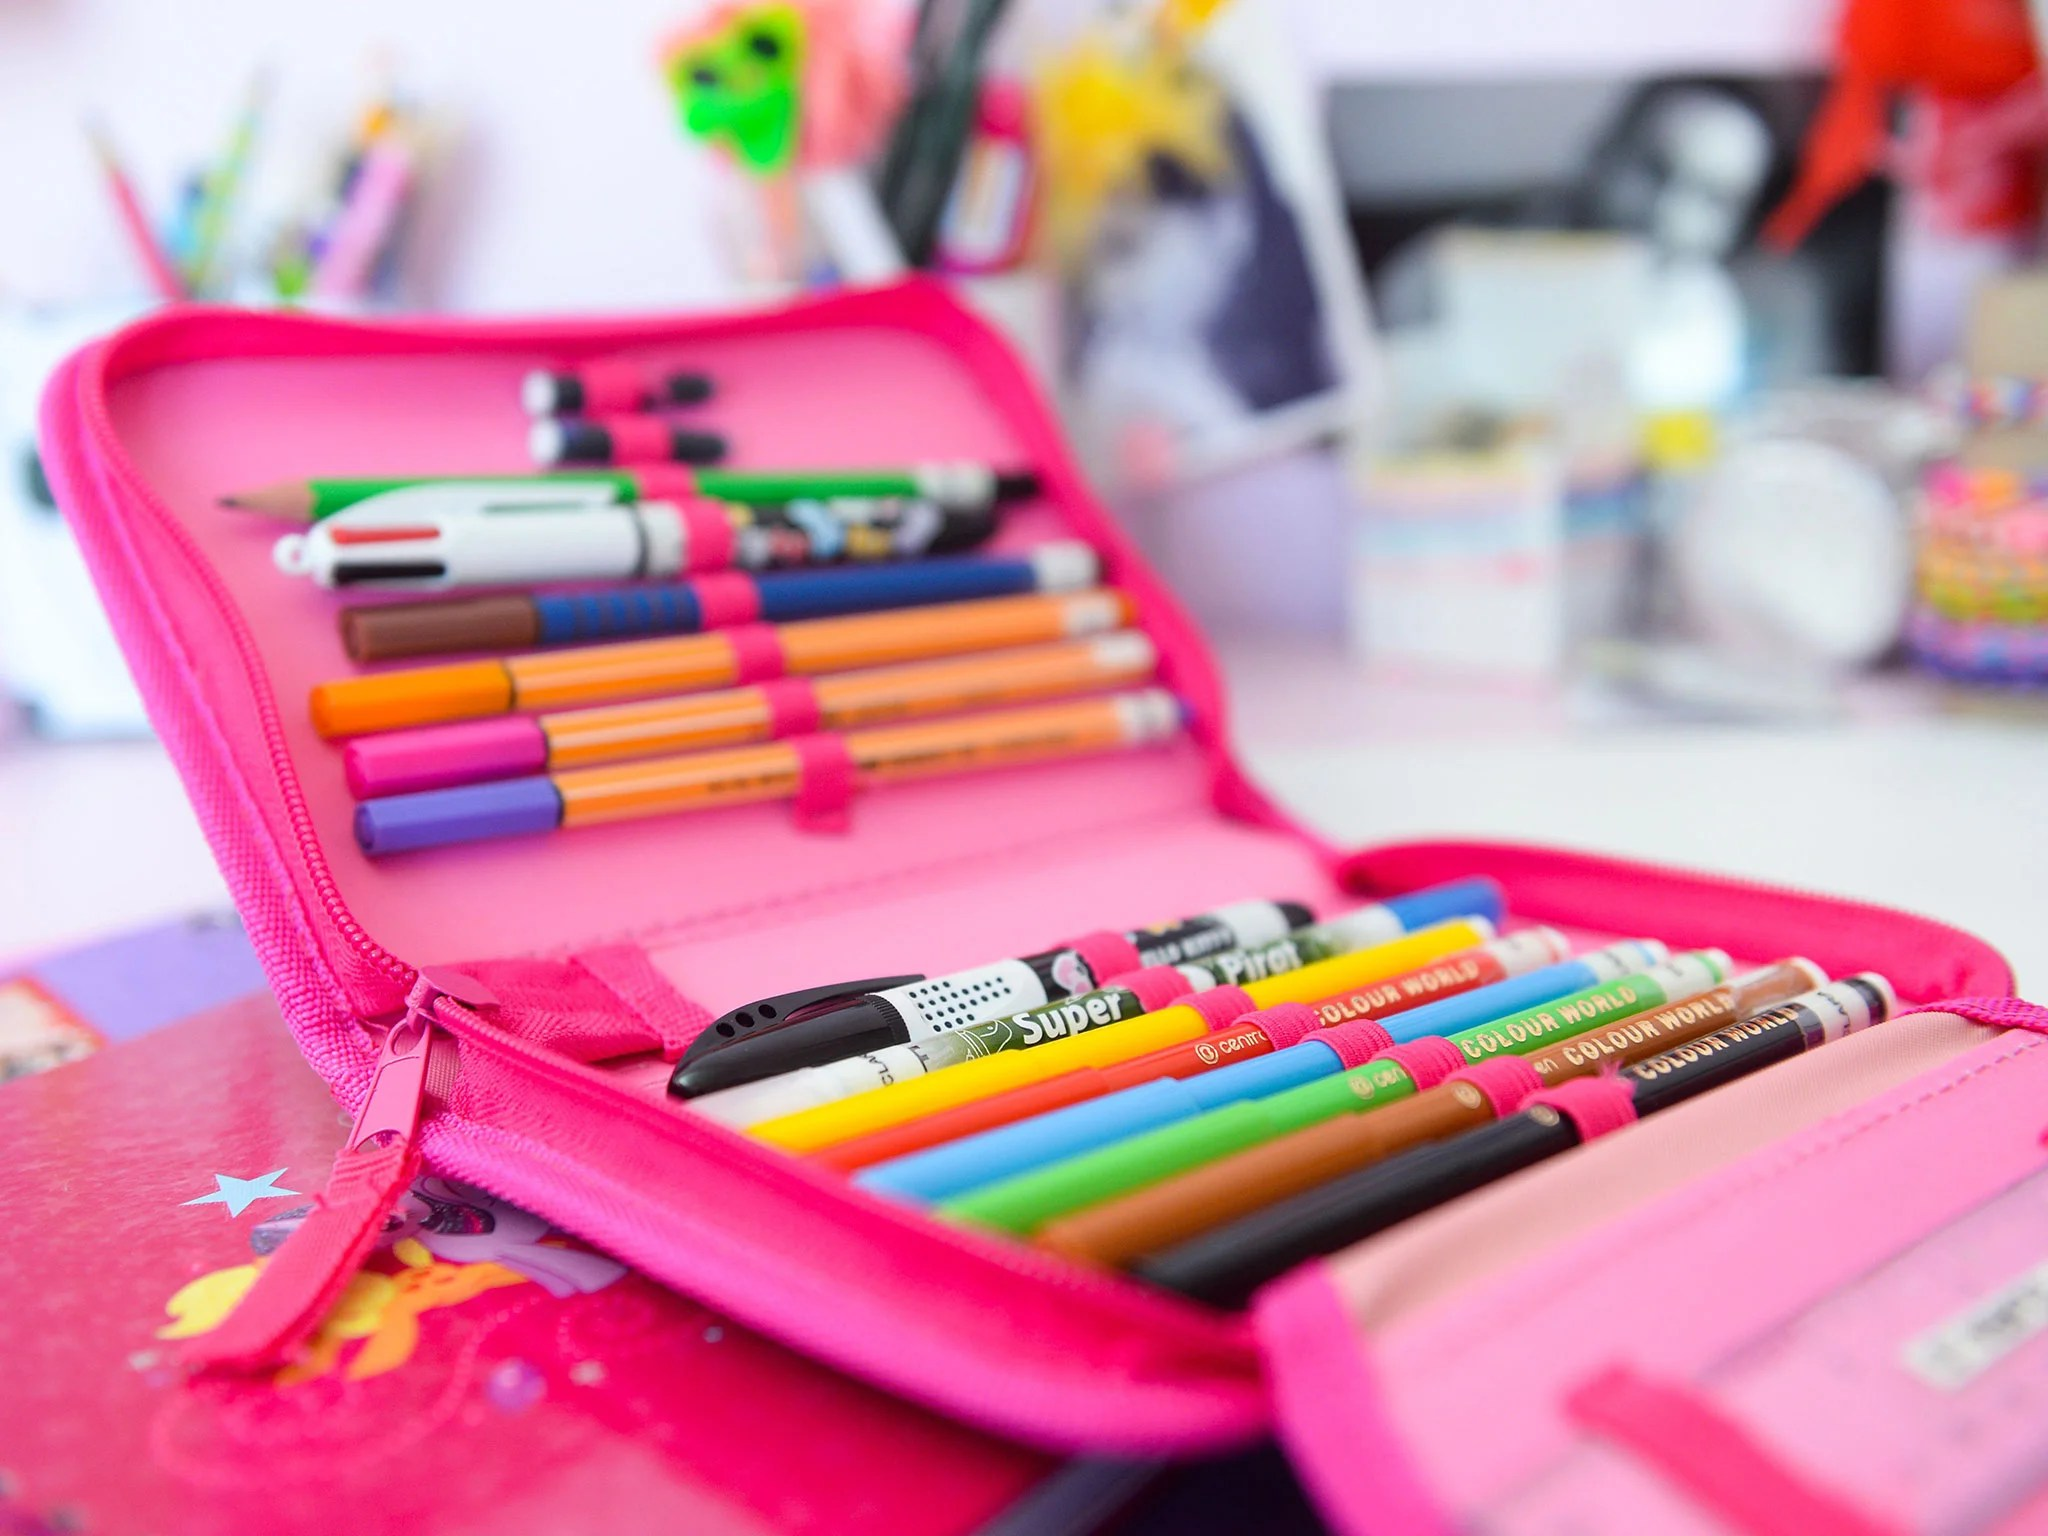 Coolest Pencil In The World 10 Best Pencil Cases The Independent